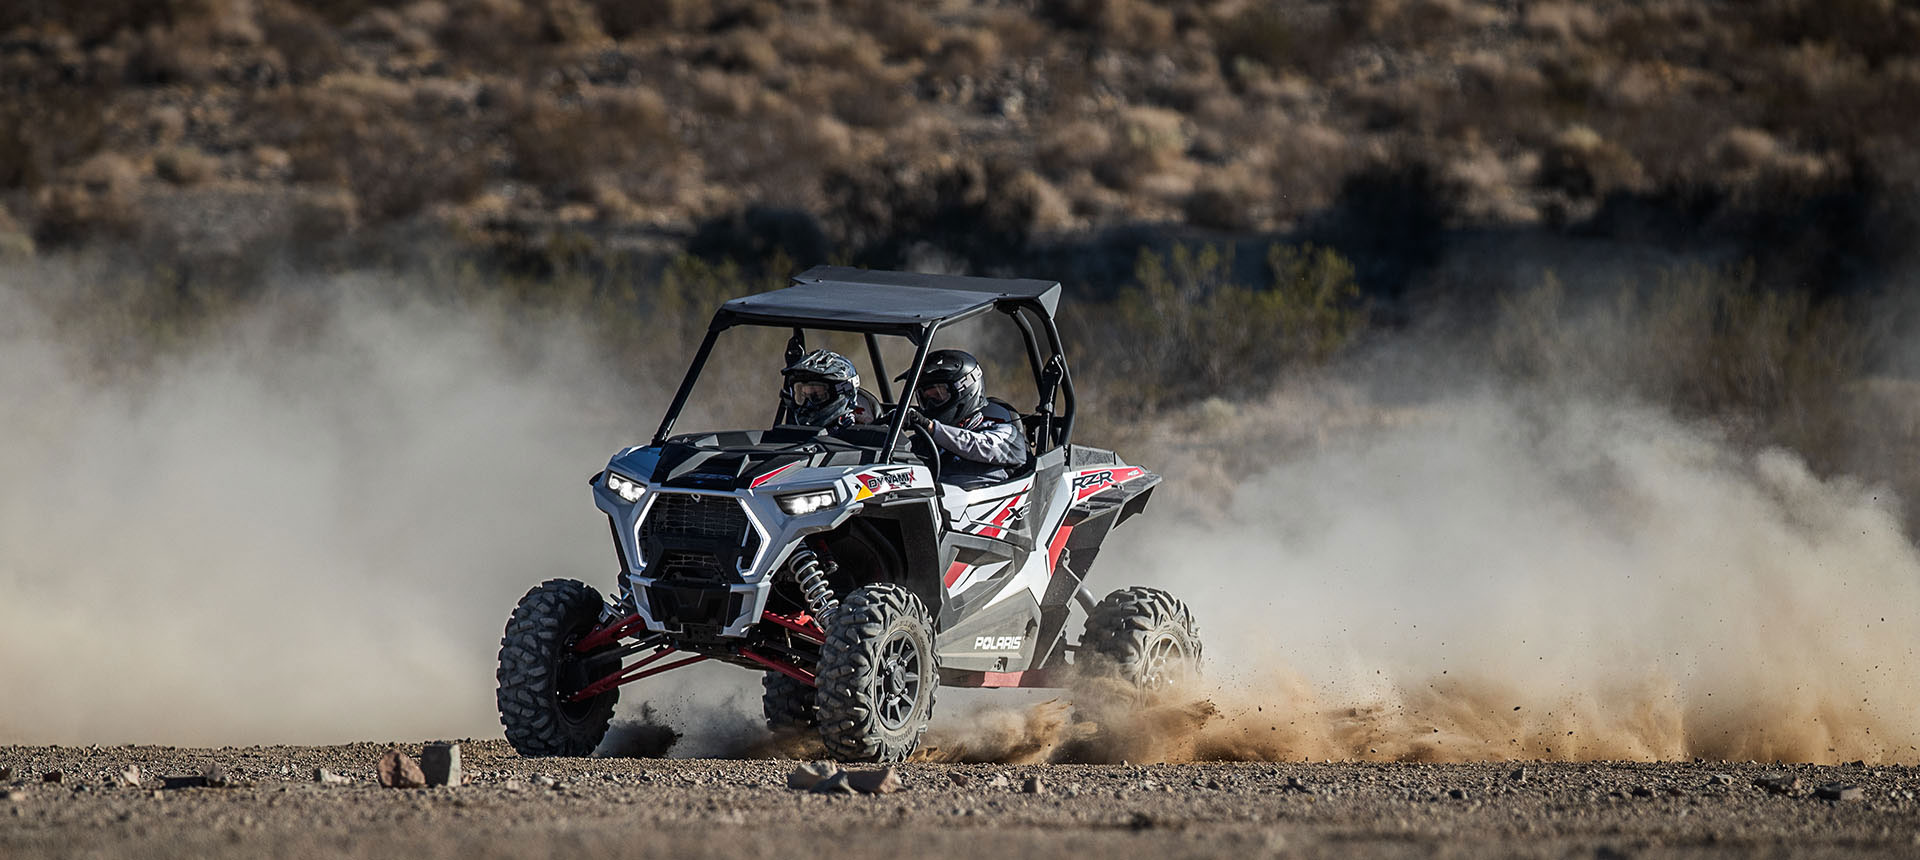 2019 Polaris RZR XP 1000 in Hazlehurst, Georgia - Photo 2